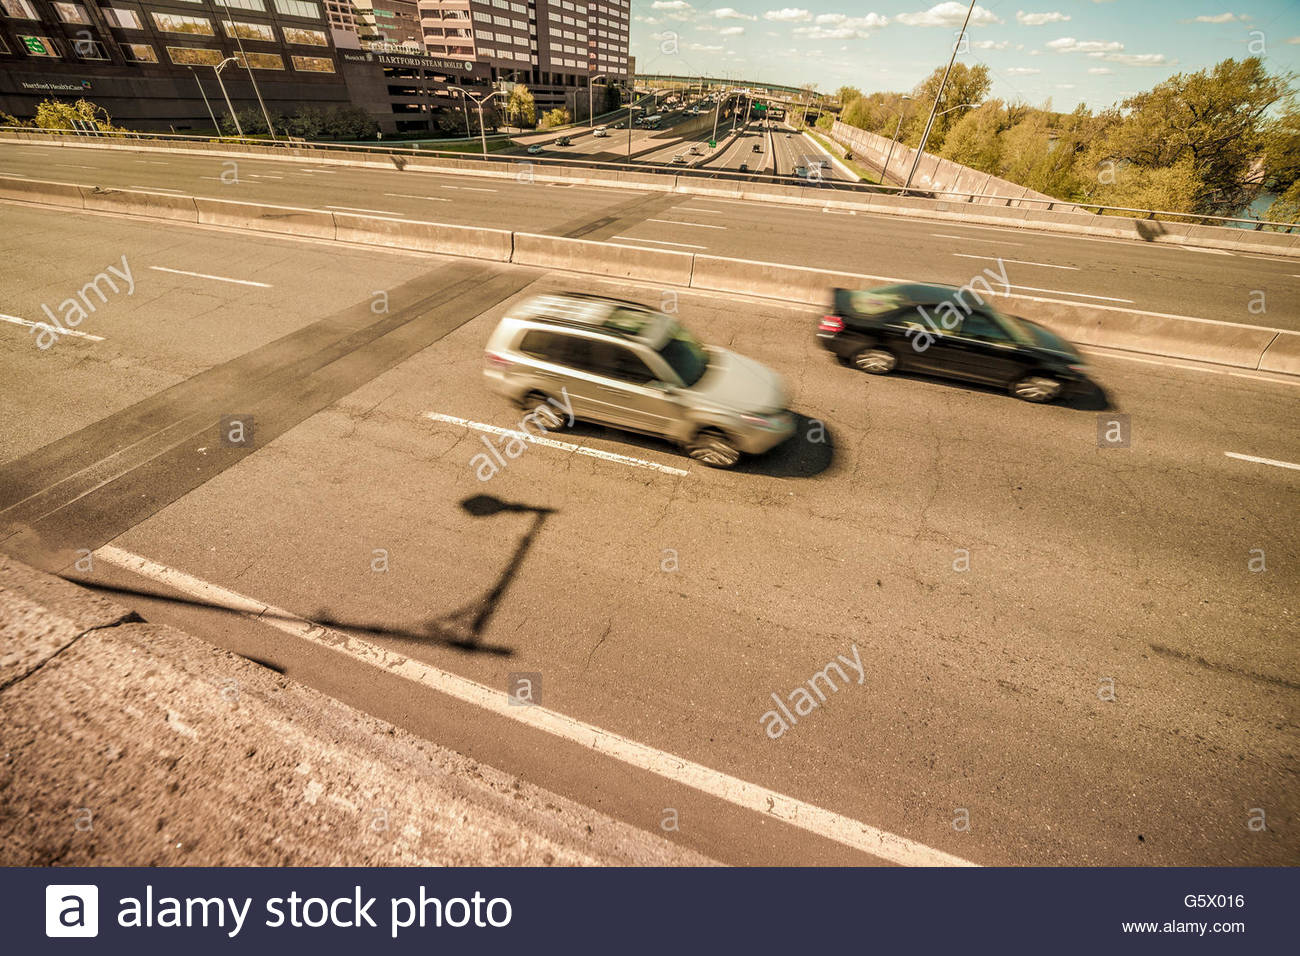 Automobiles on a highway. Stock Photo